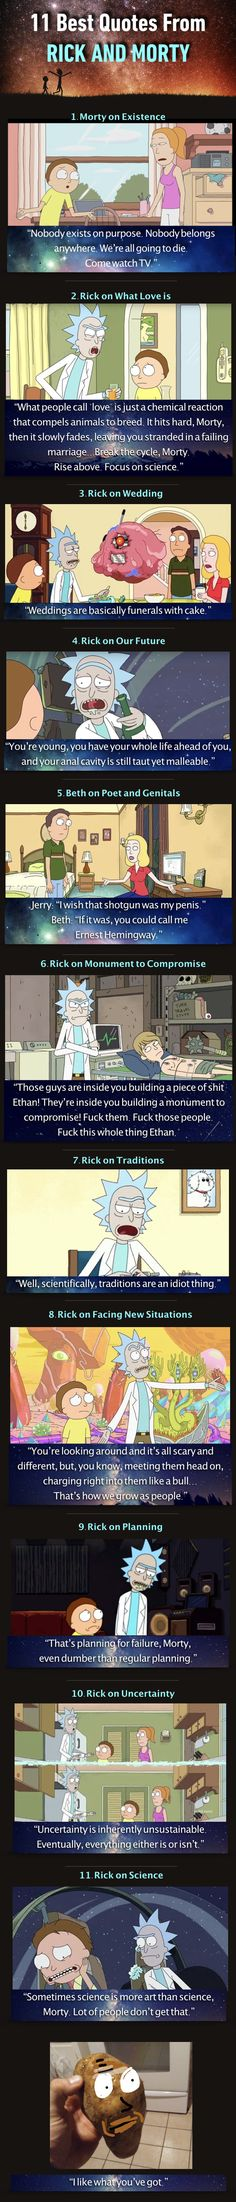 11 Best Rick And Morty Quotes Of All Time